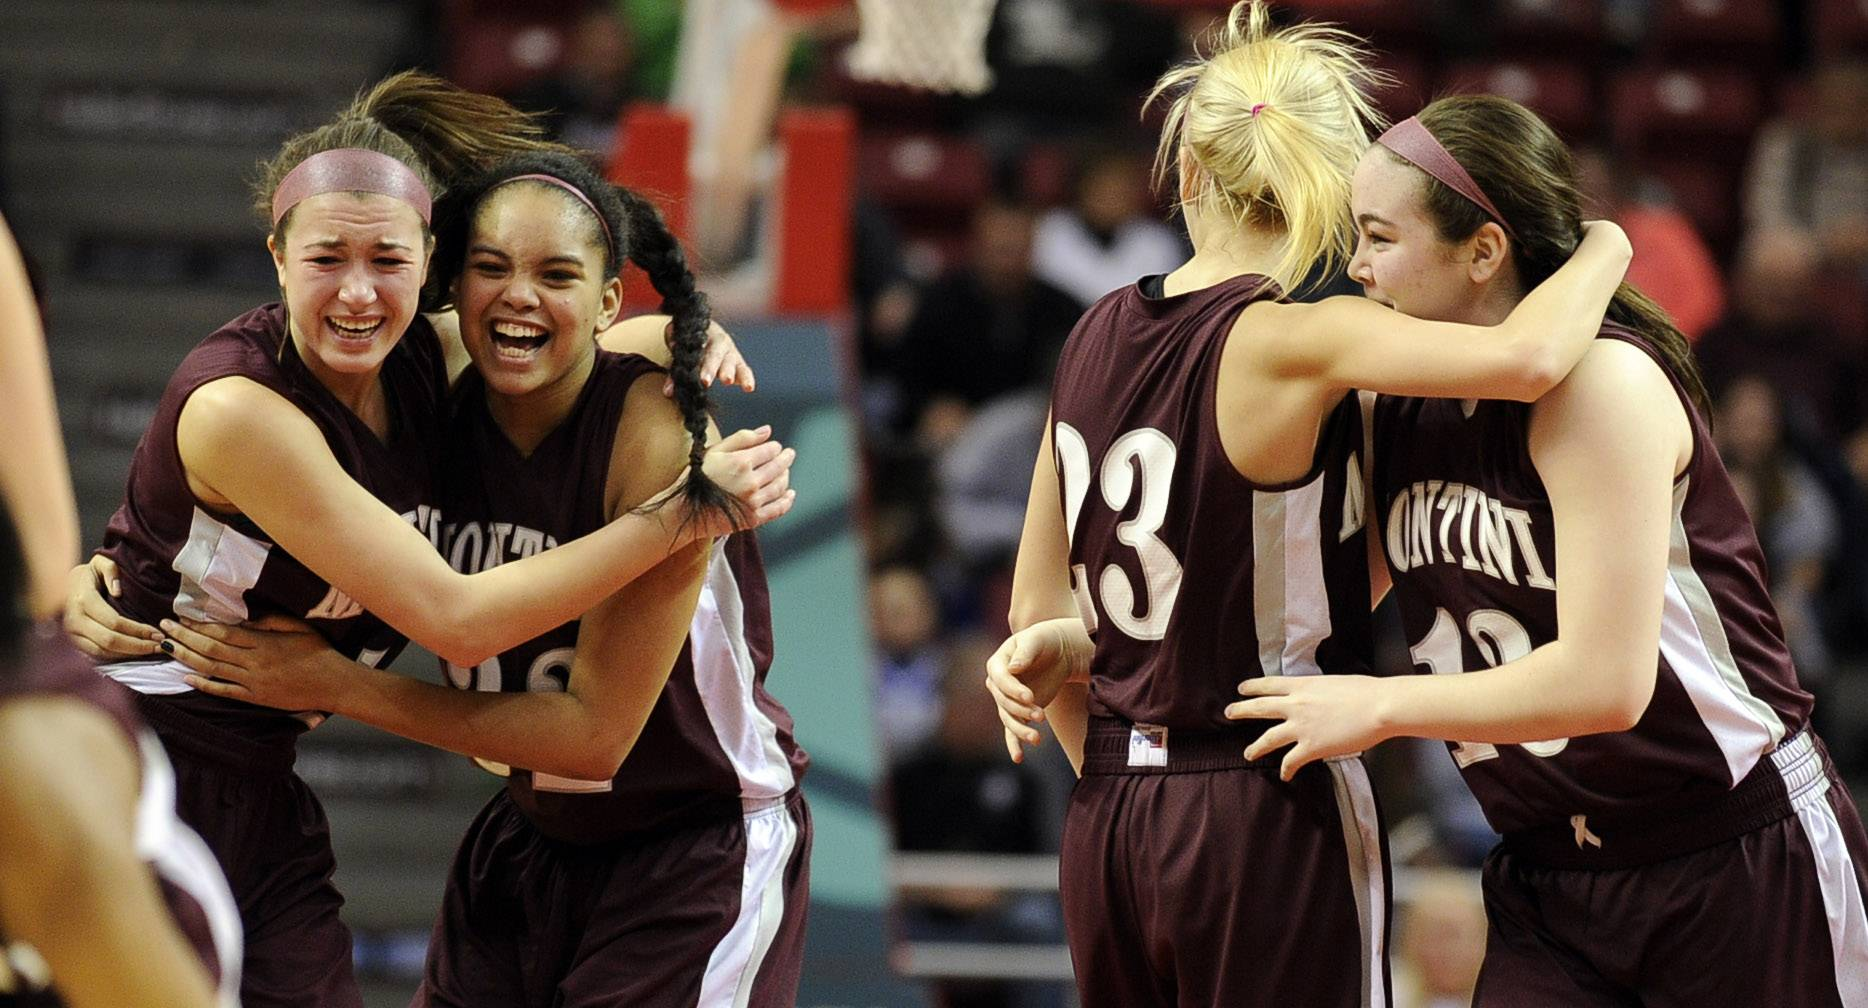 Montini player Kelsey Bogdan celebrates with Rainey Kuykendall as Lea Kerstein and Kaylee Bambule join in on the fun.